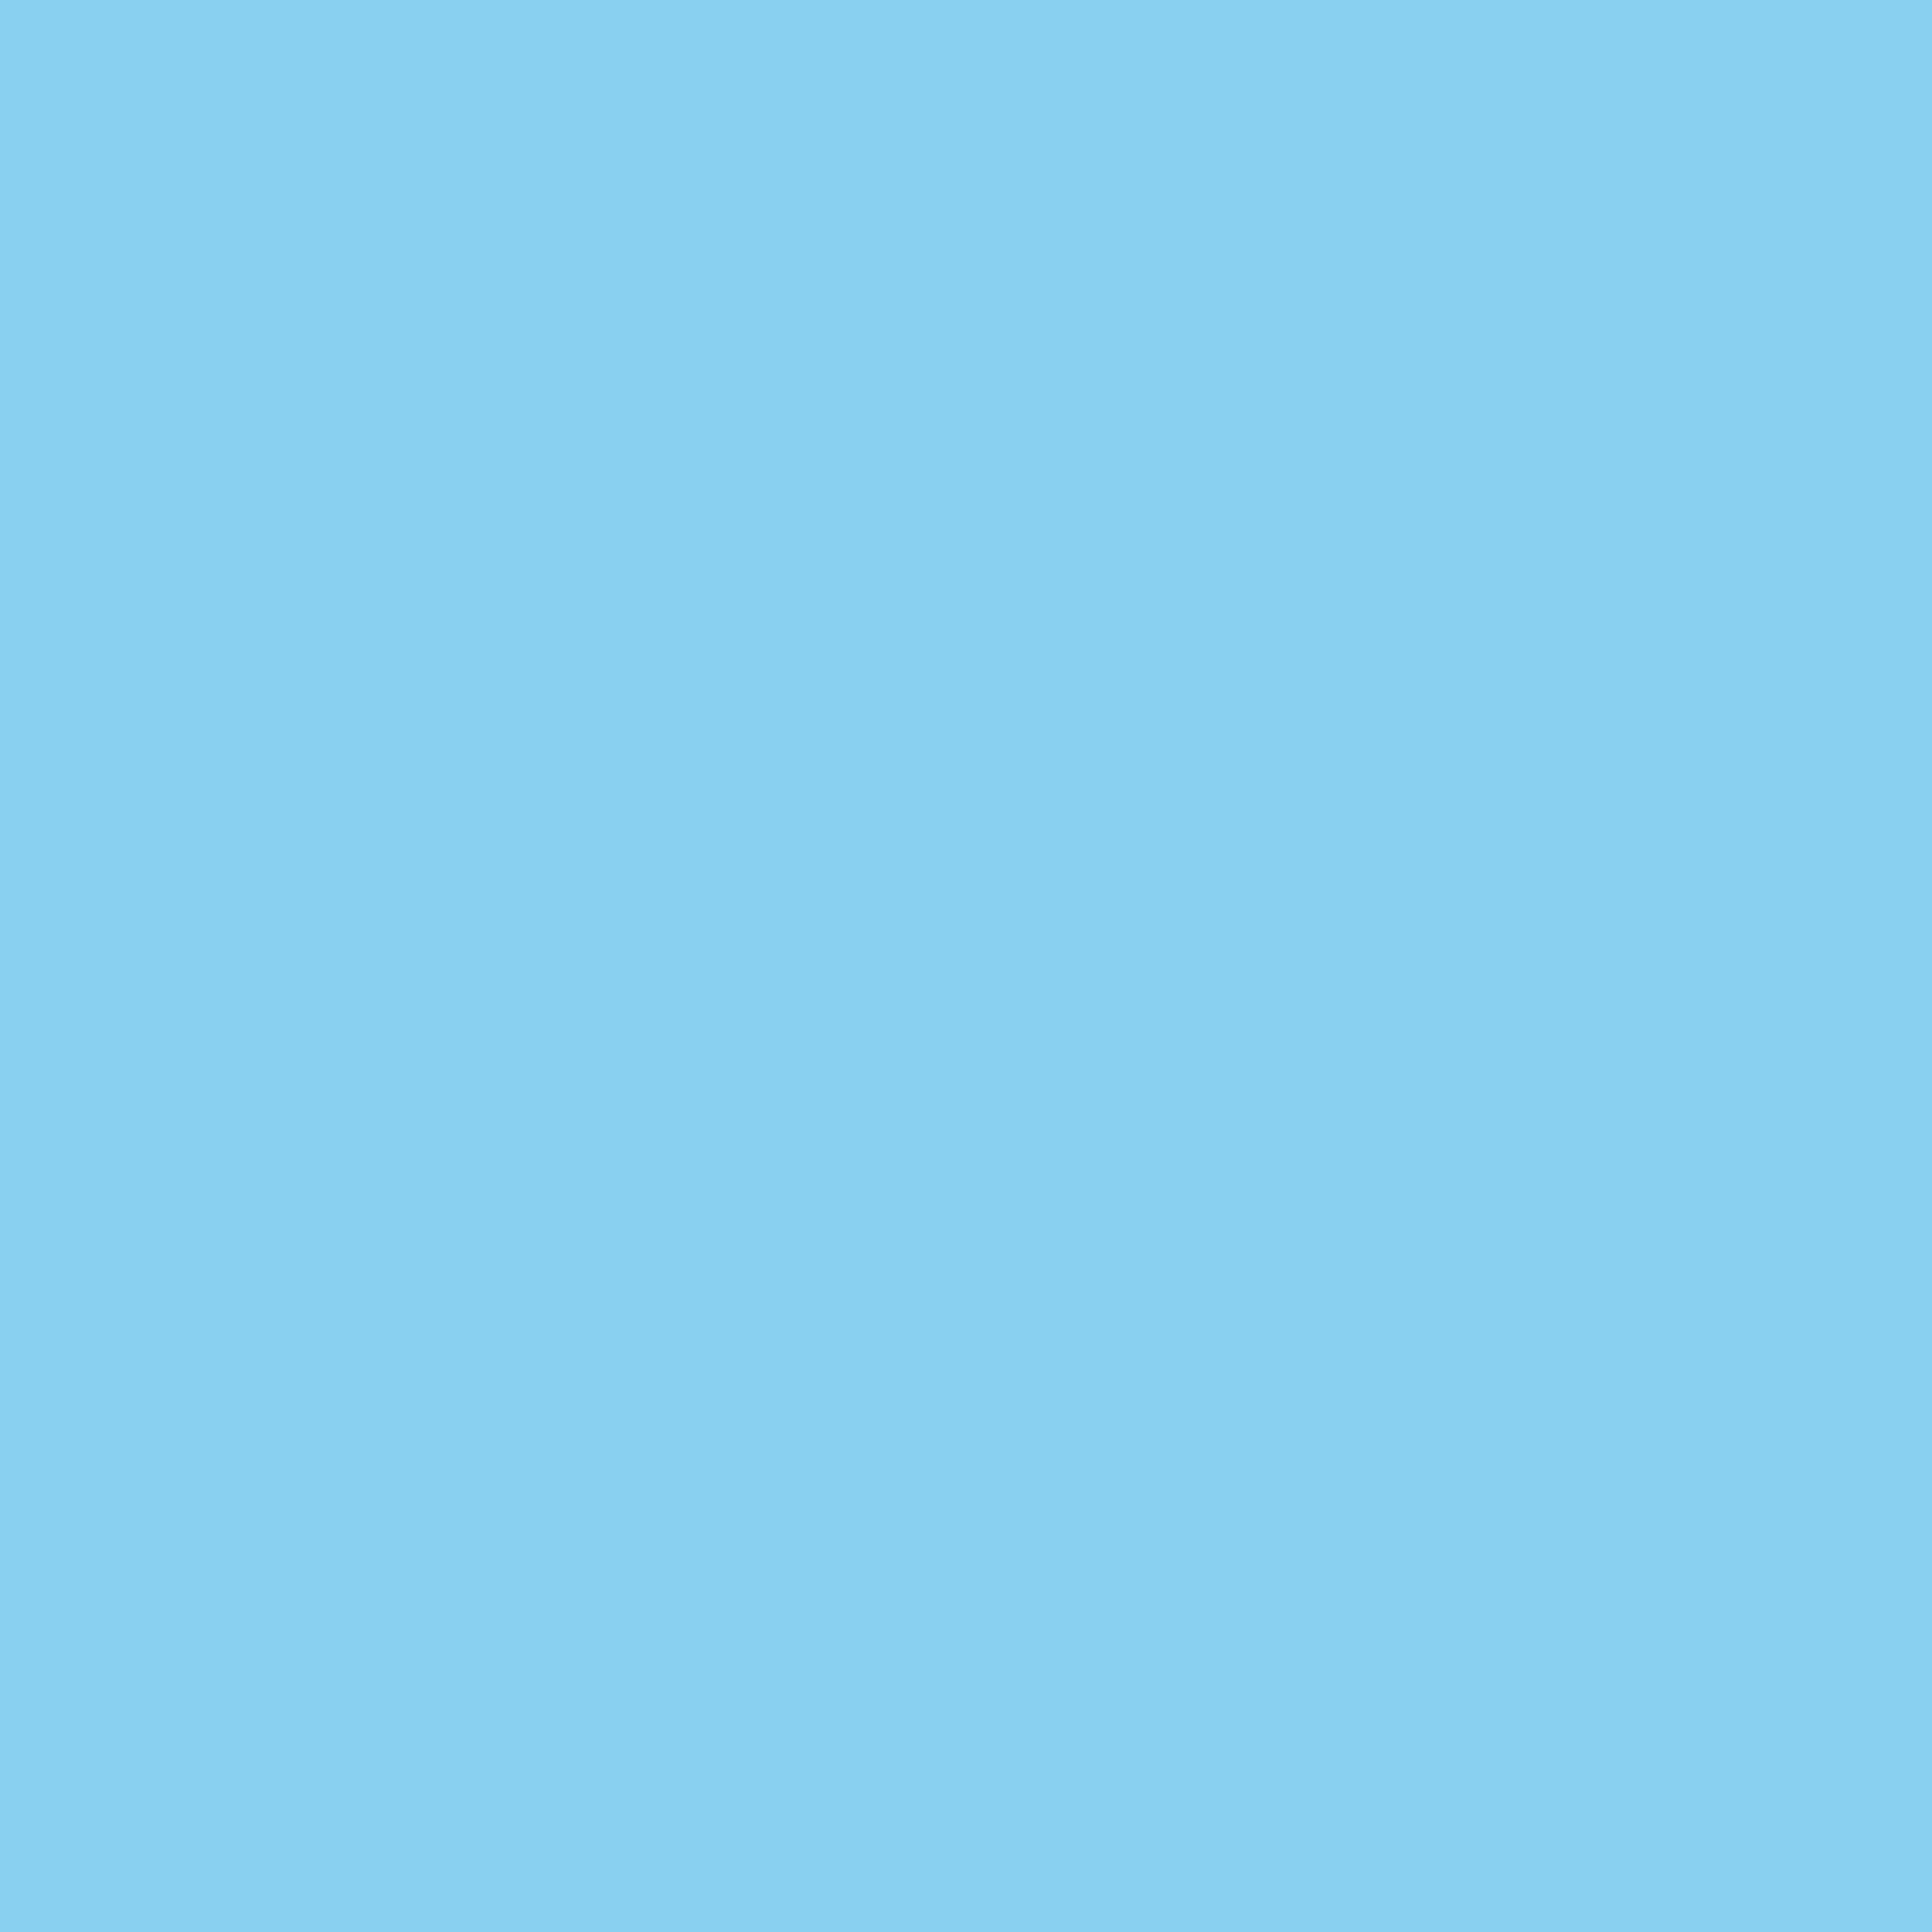 Free Baby Blue Solid Color Background